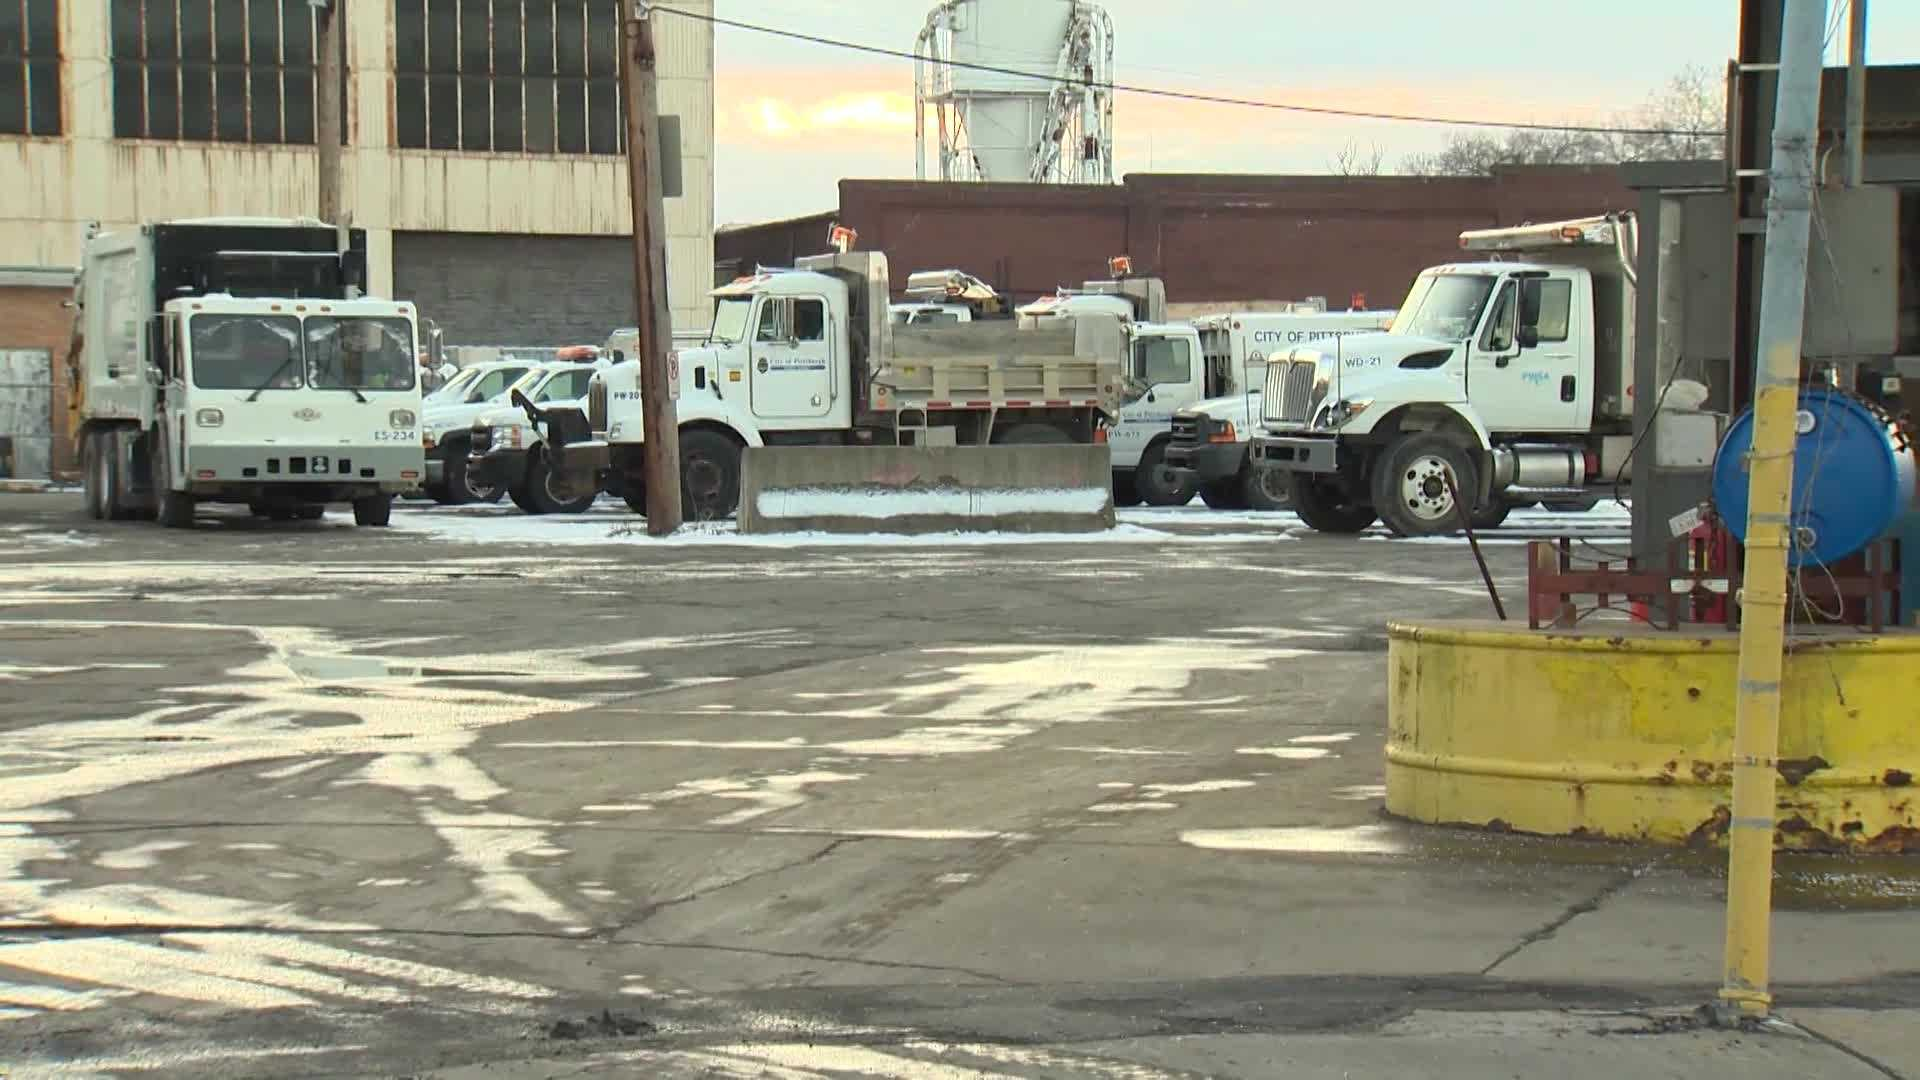 img-city of Pittsburgh snow trucks